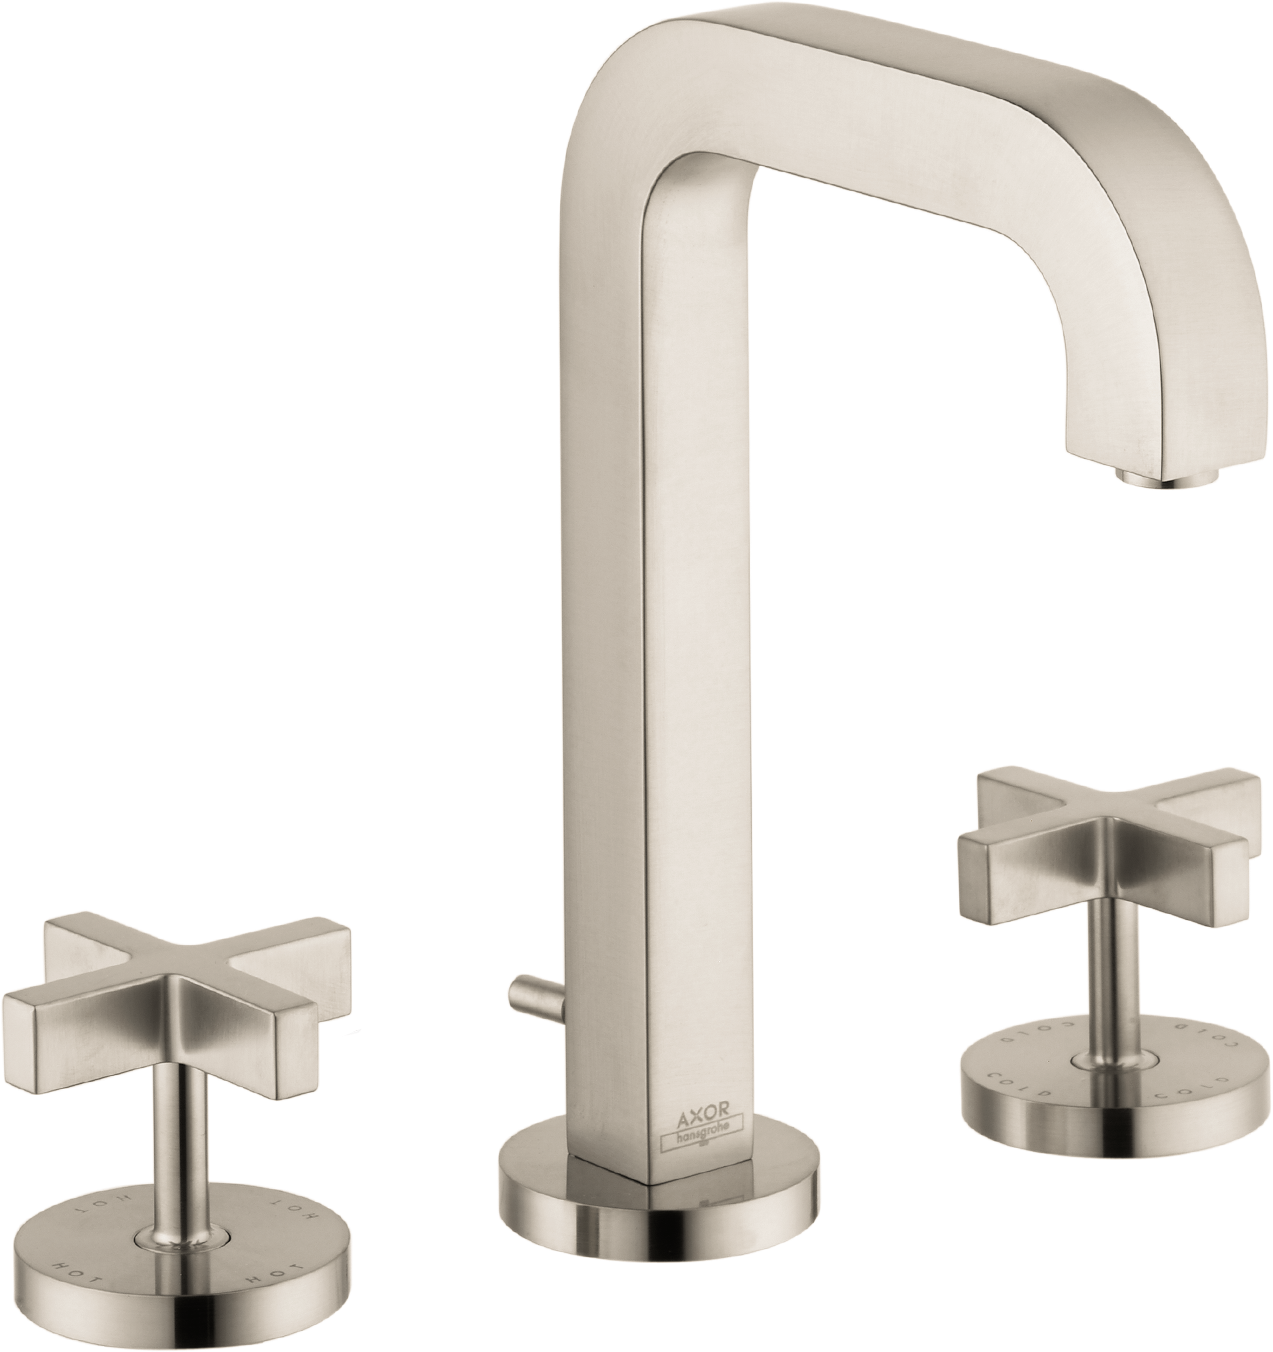 Axor AXOR Citterio Widespread Faucet with Cross Handles, 1.2 GPM